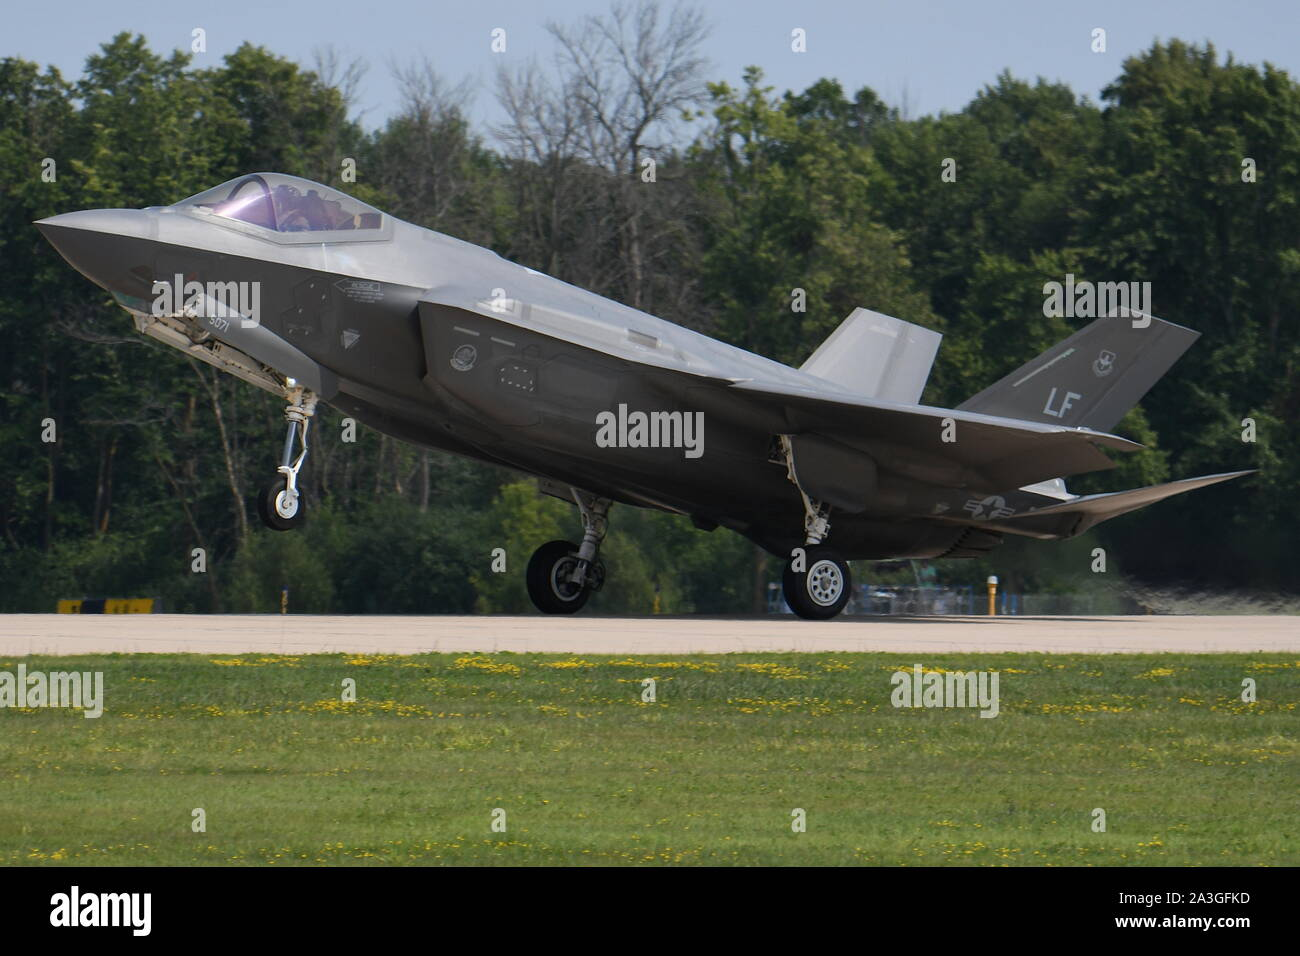 LOCKHEED MARTIN F-35 LIGHTNING II OF THE 56th FIGHTER WING, U.S. AIR FORCE. Stock Photo